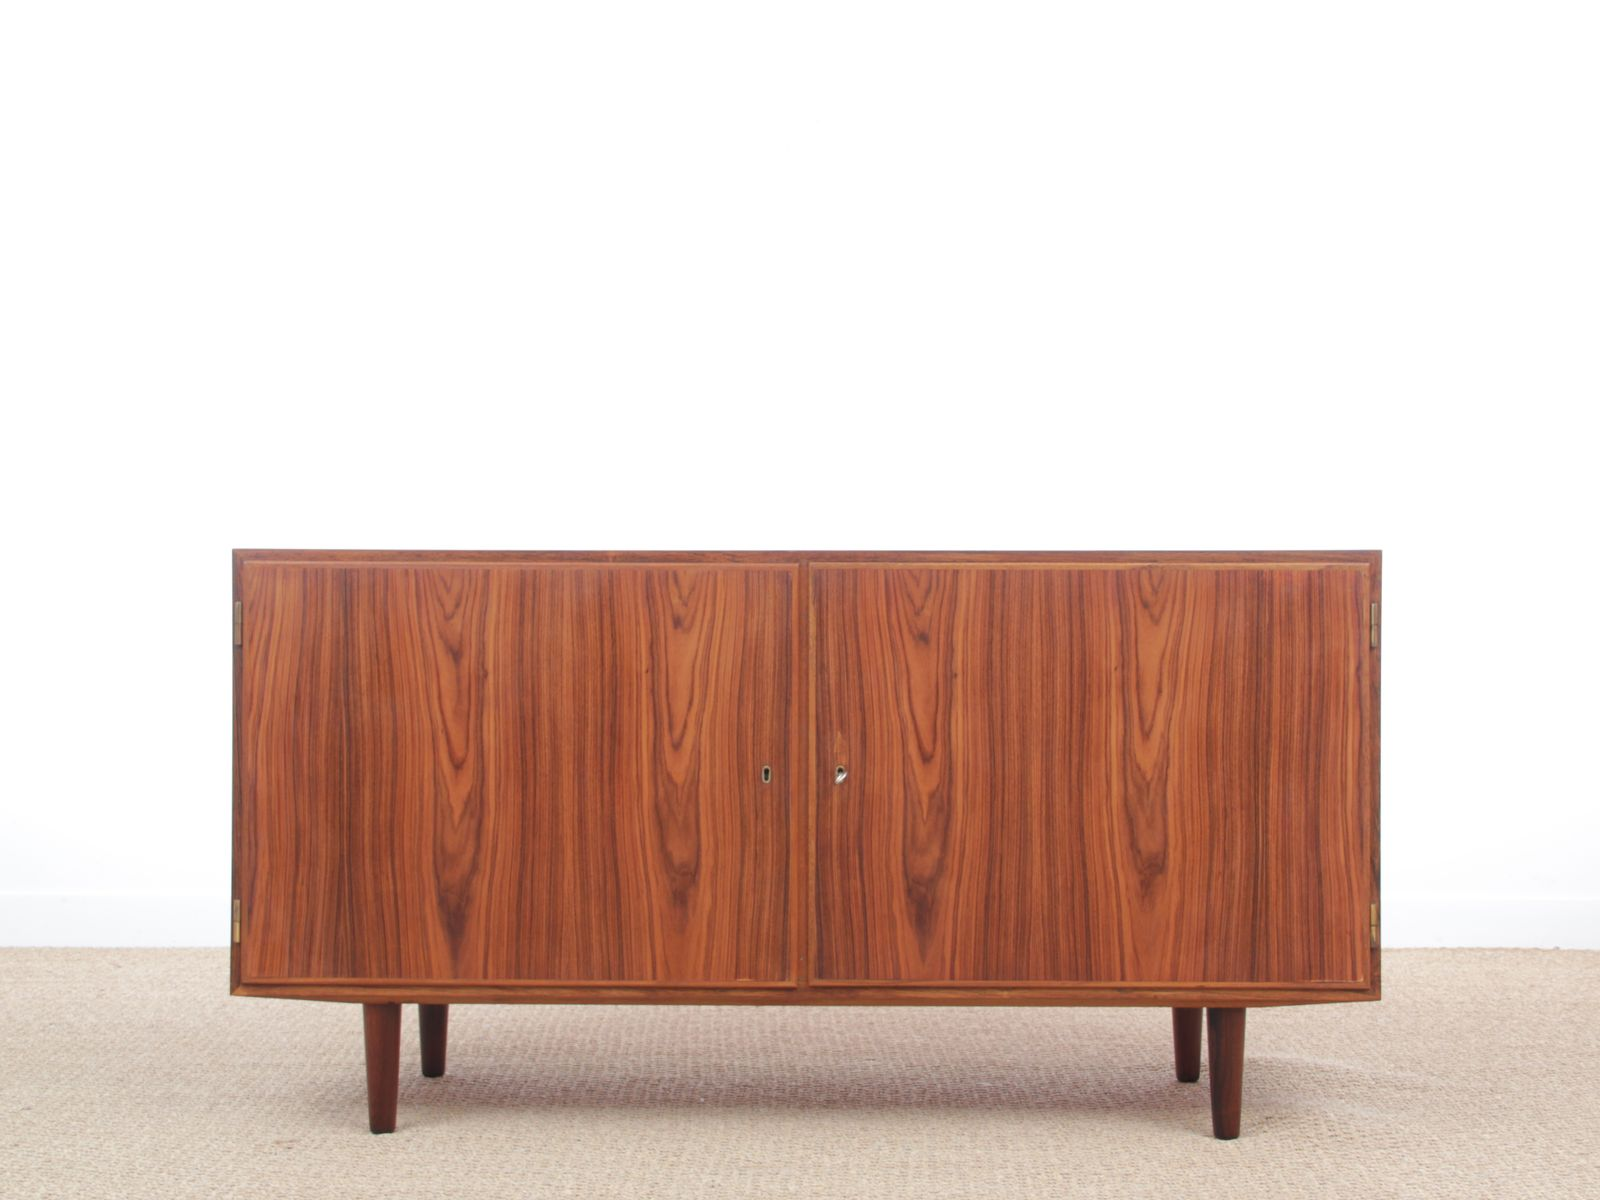 skandinavisches mid century modern sideboard aus rio palisander von poul hundevad 1960er bei. Black Bedroom Furniture Sets. Home Design Ideas